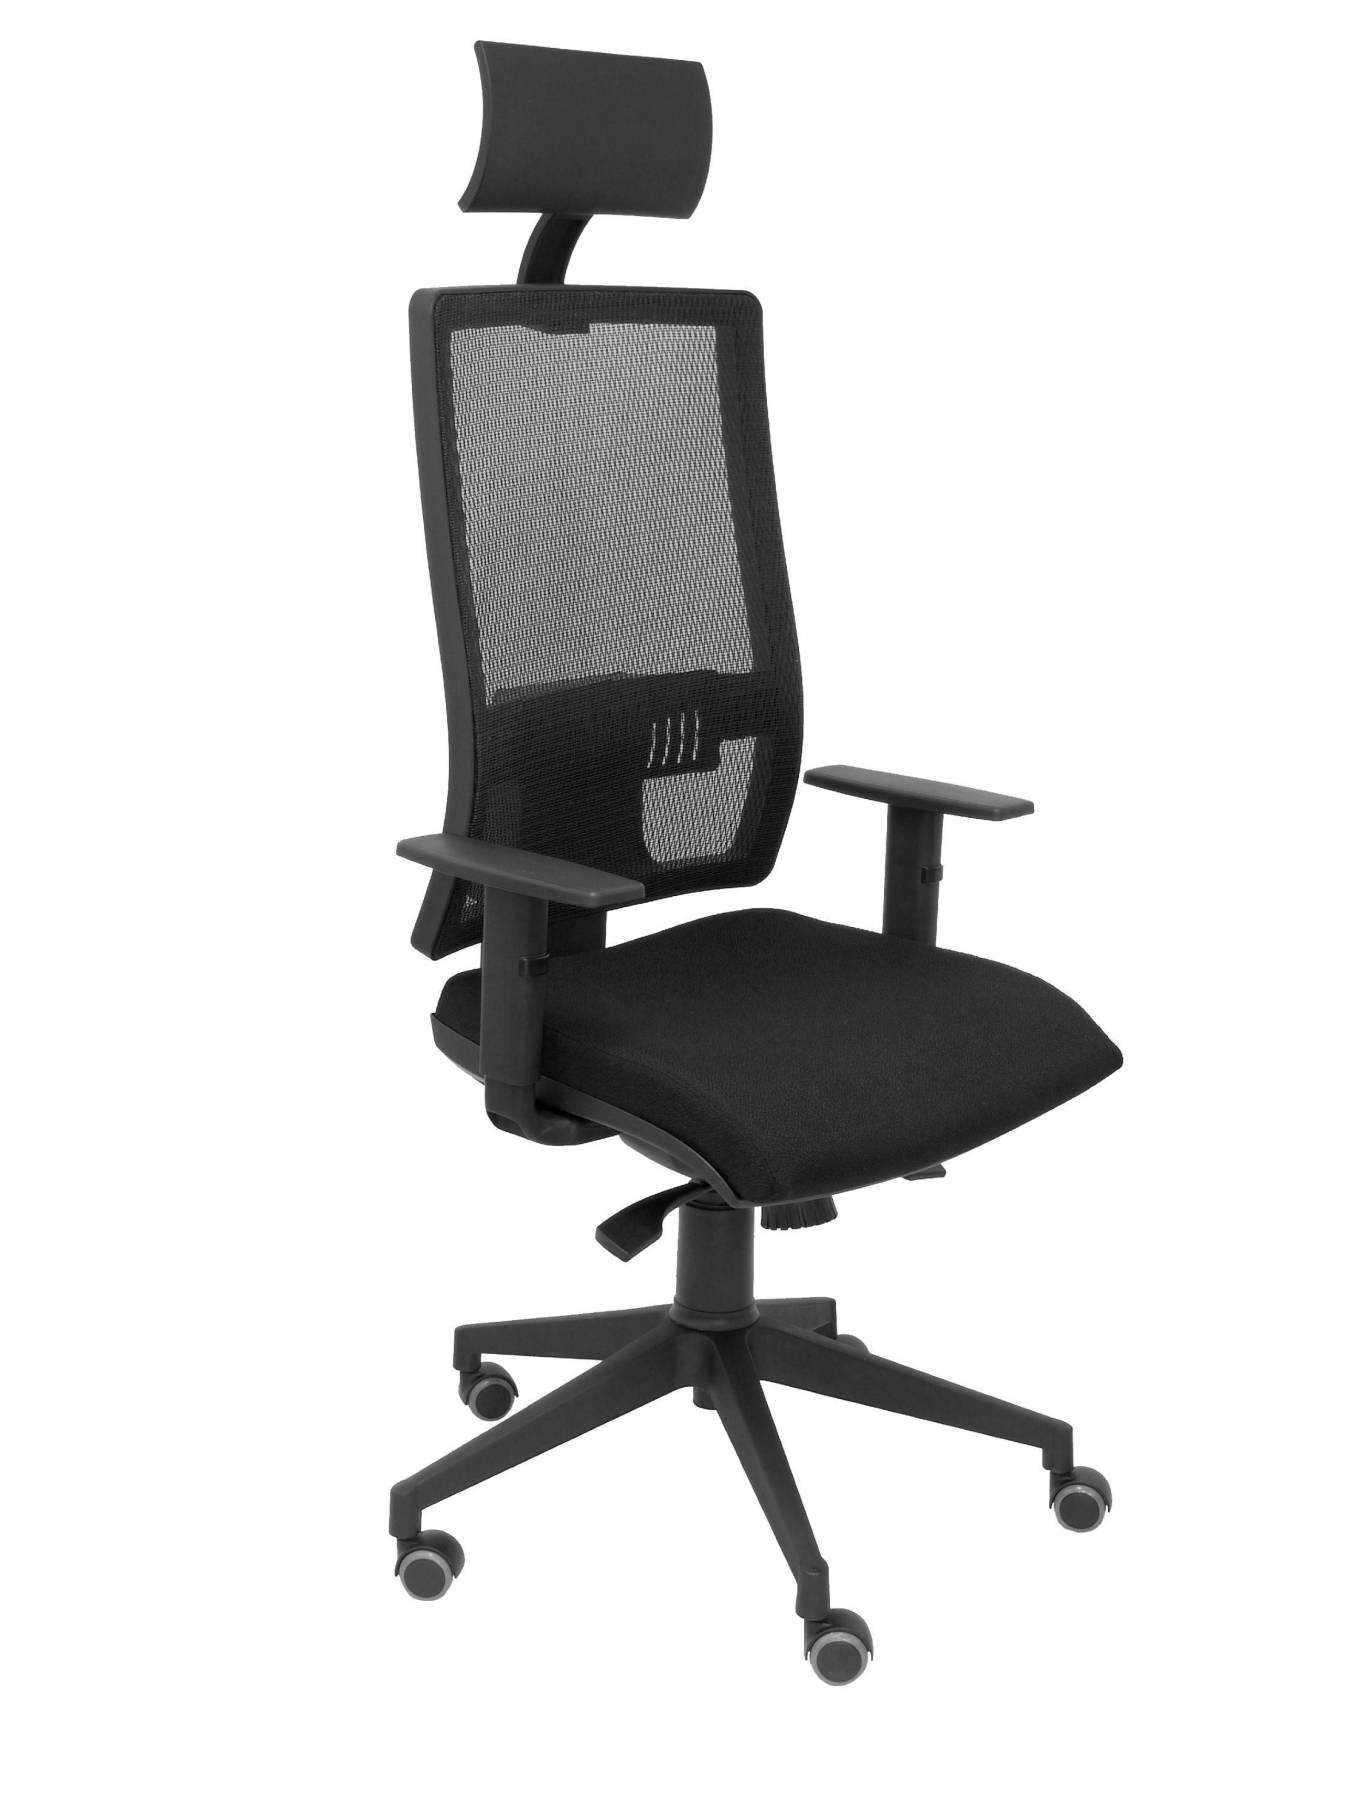 Ergonomic office chair with mechanism synchro and adjustable height high Back mesh breathable with cabece|  - title=